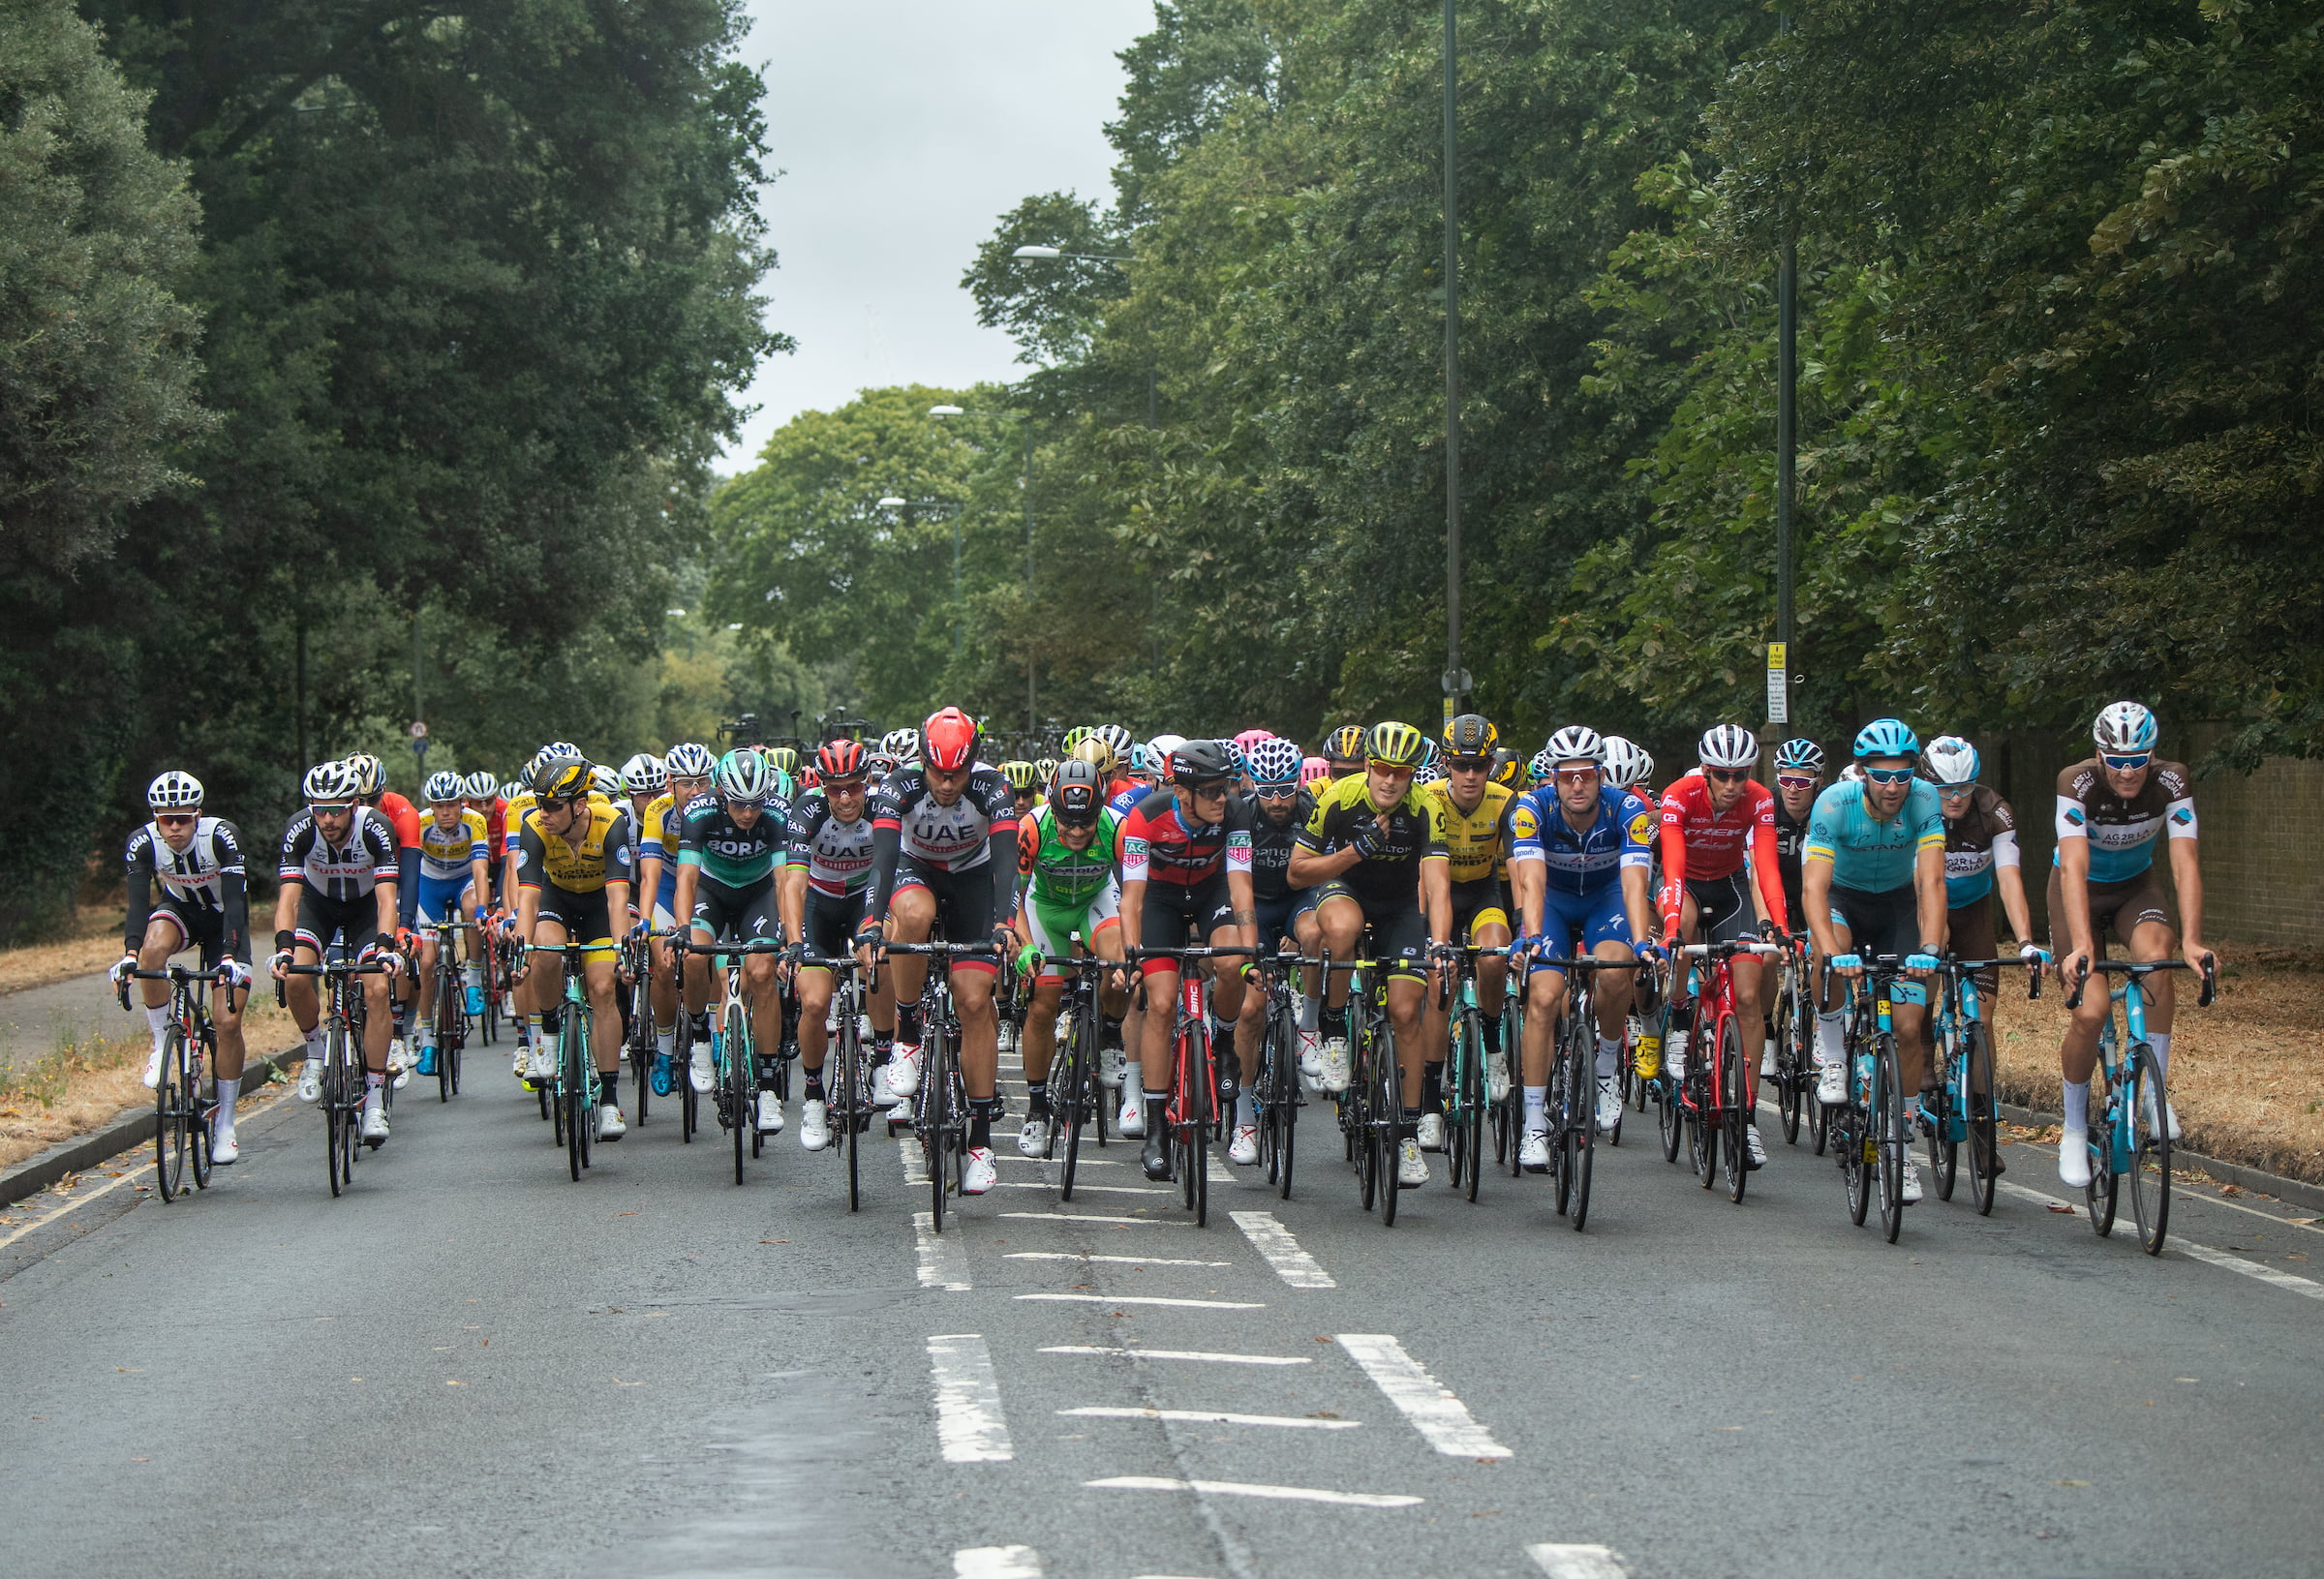 Photo: Ben Queenborough for Prudential RideLondon